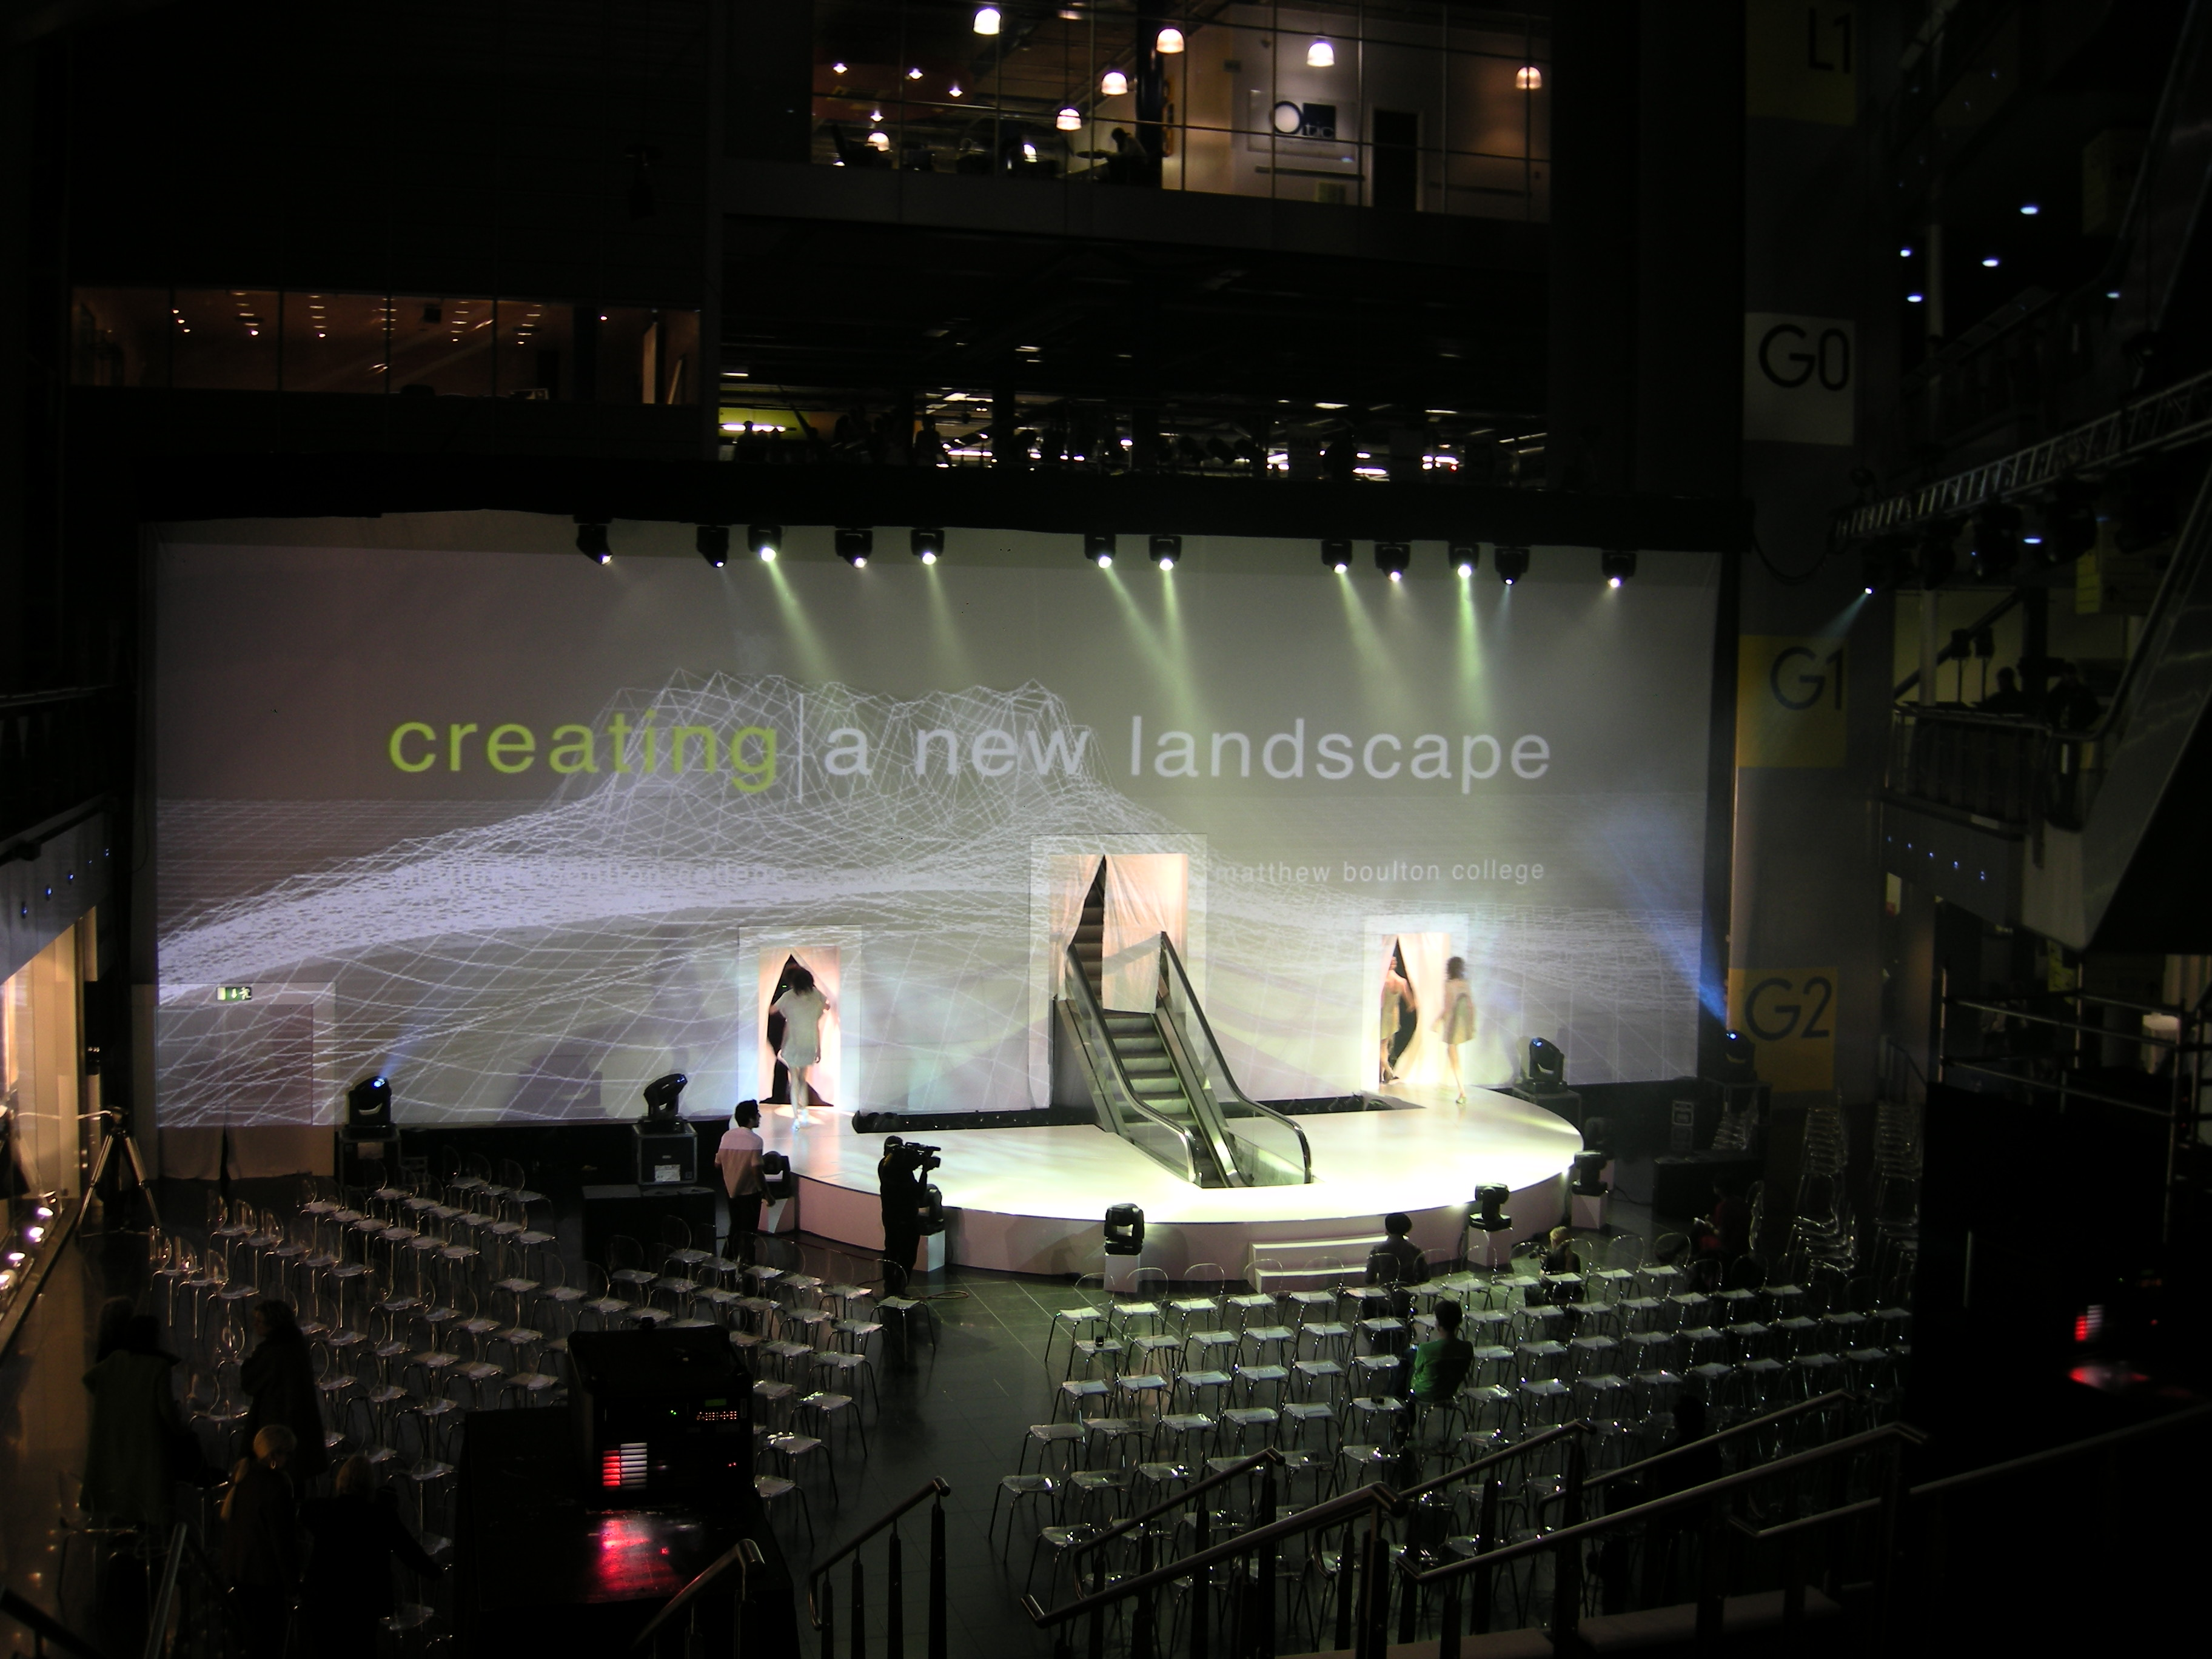 Cyc Backdrop and Circular Stage - Think Tank